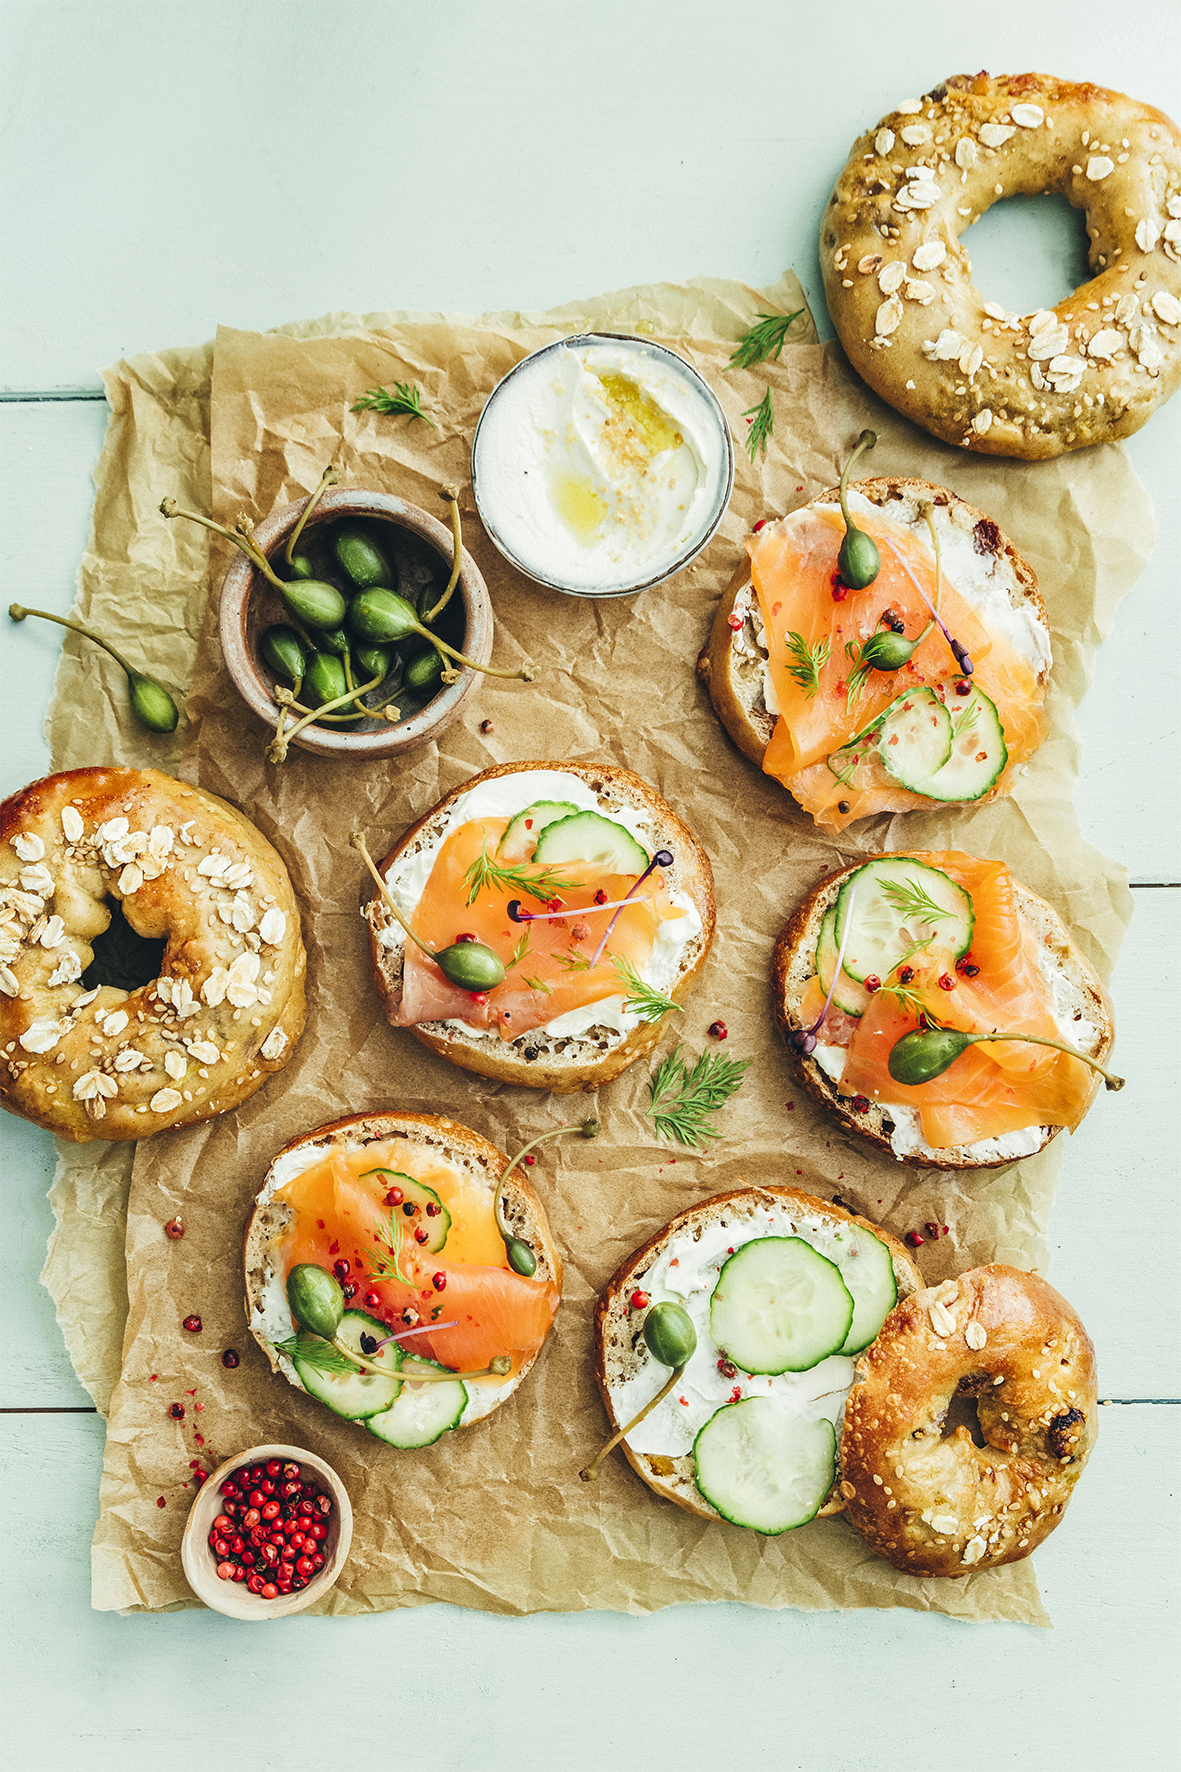 Breakfast gourmand__Bagel au saumon et cream cheese